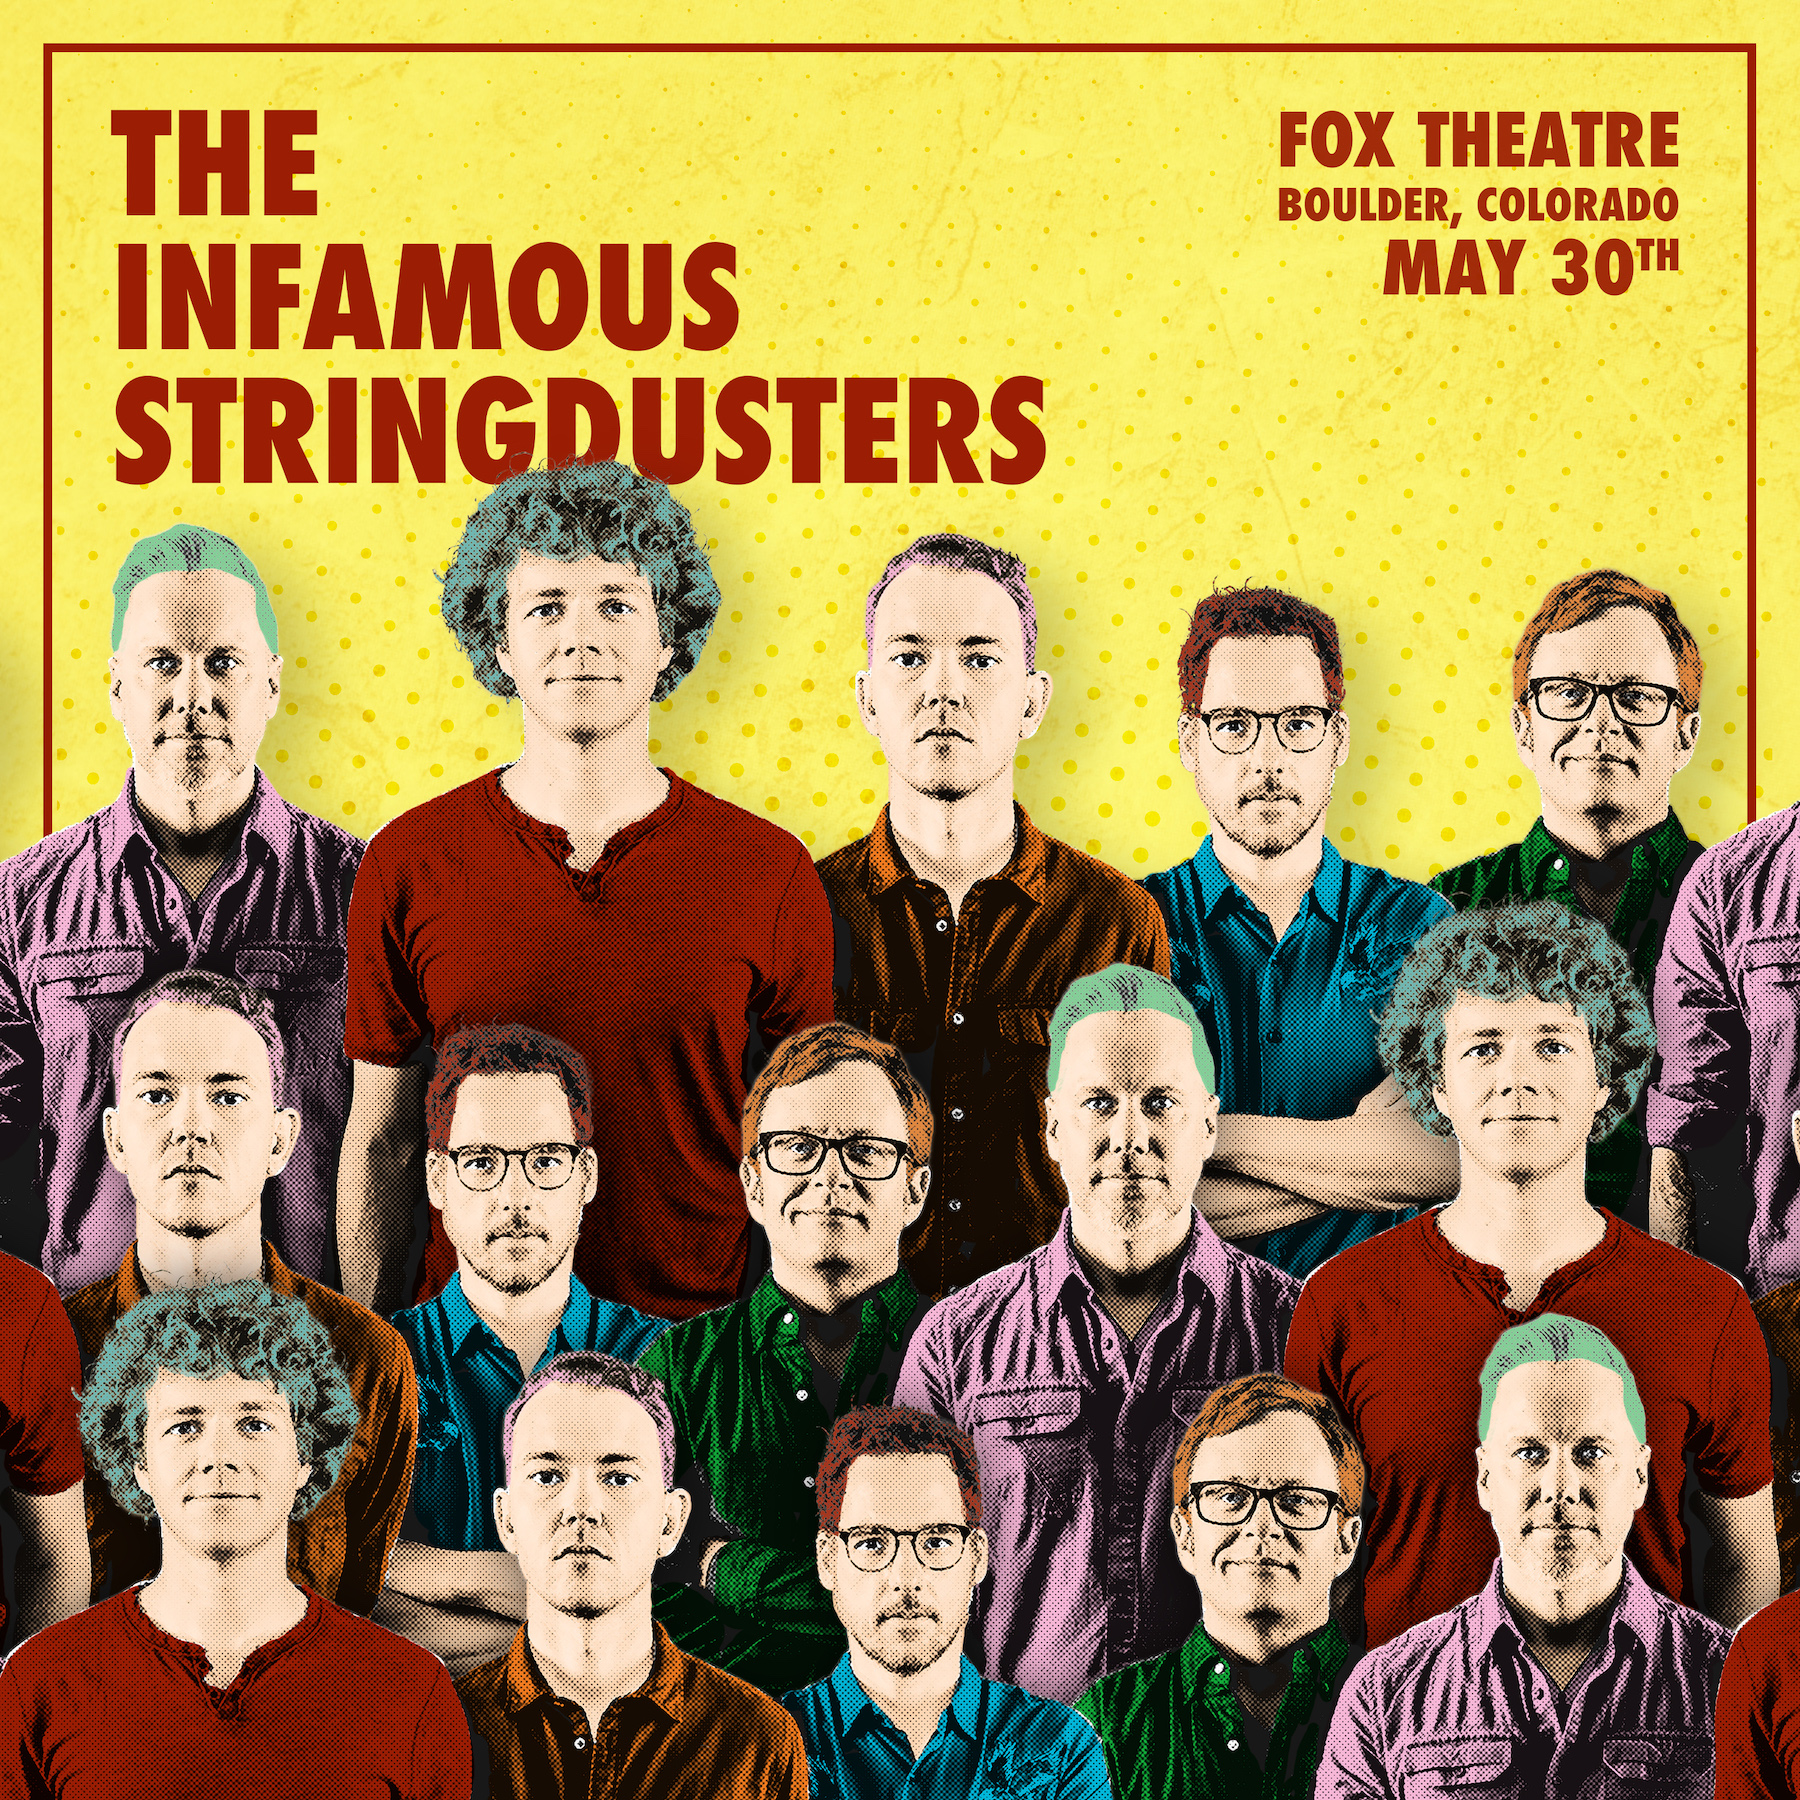 The Stringdusters will play the Fox Theatre tomorrow night!